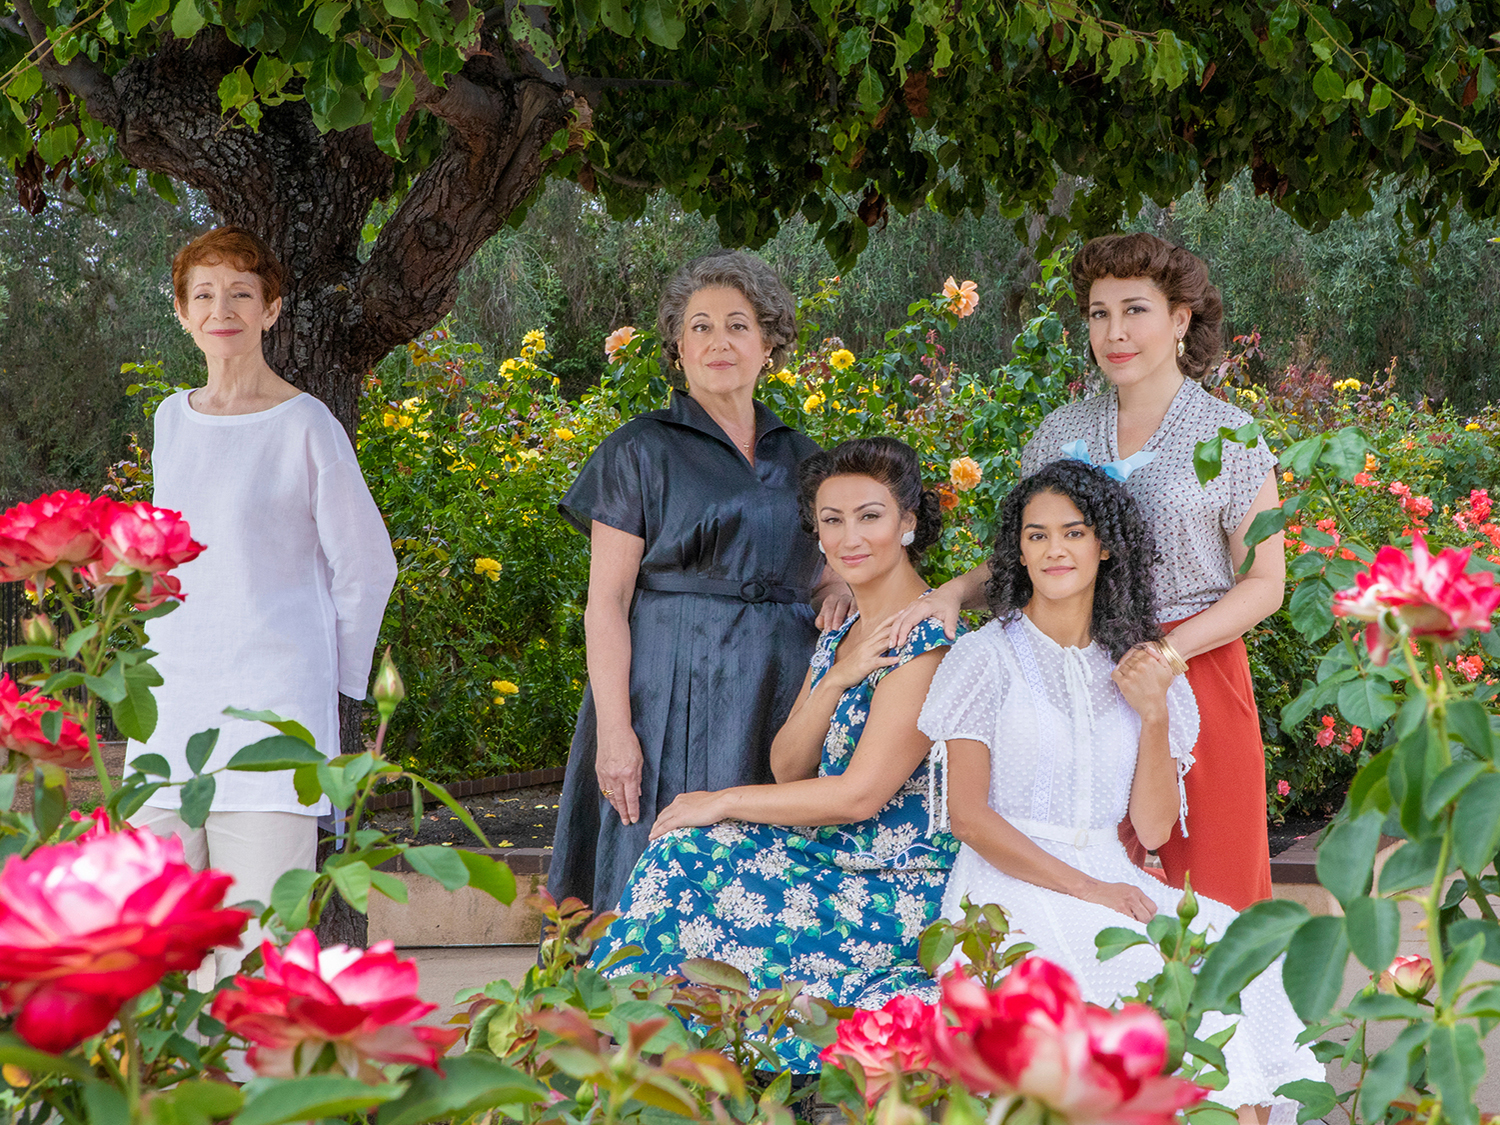 Carmen Roman appears as Older Anuncia, Mary Testa as Granmama, Eden Espinosa as Mamí, Kalyn West as Younger Anuncia, and Andréa Burns as Tía in The Gardens of Anuncia. Photo by Jim Cox.